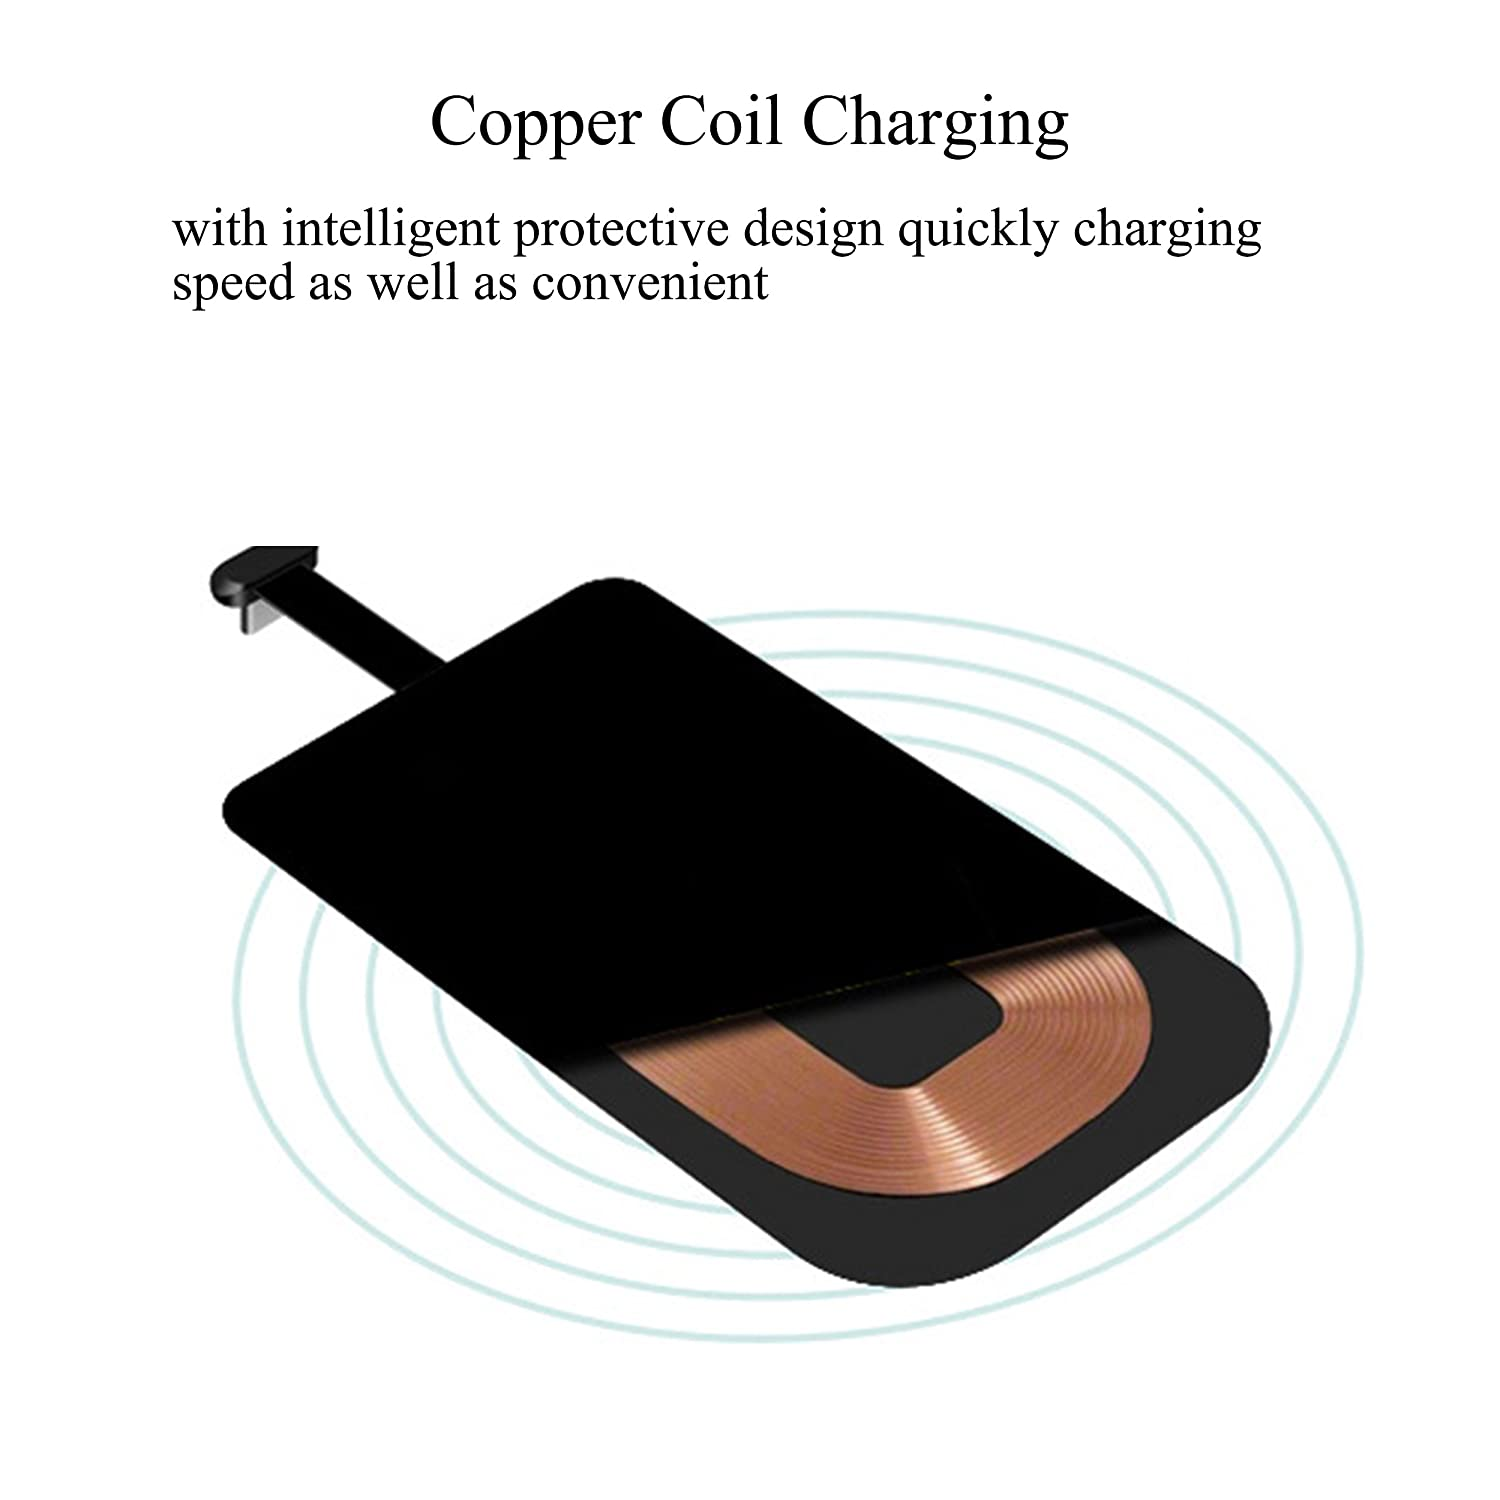 Wireless Charging Receiver,Ultra Slim Add-on Qi Receiver wireless charger kit for iPhone 7/7plus,6/6s plus,6/6s,5/5S/SE,and Other Apple Devices[Gold]